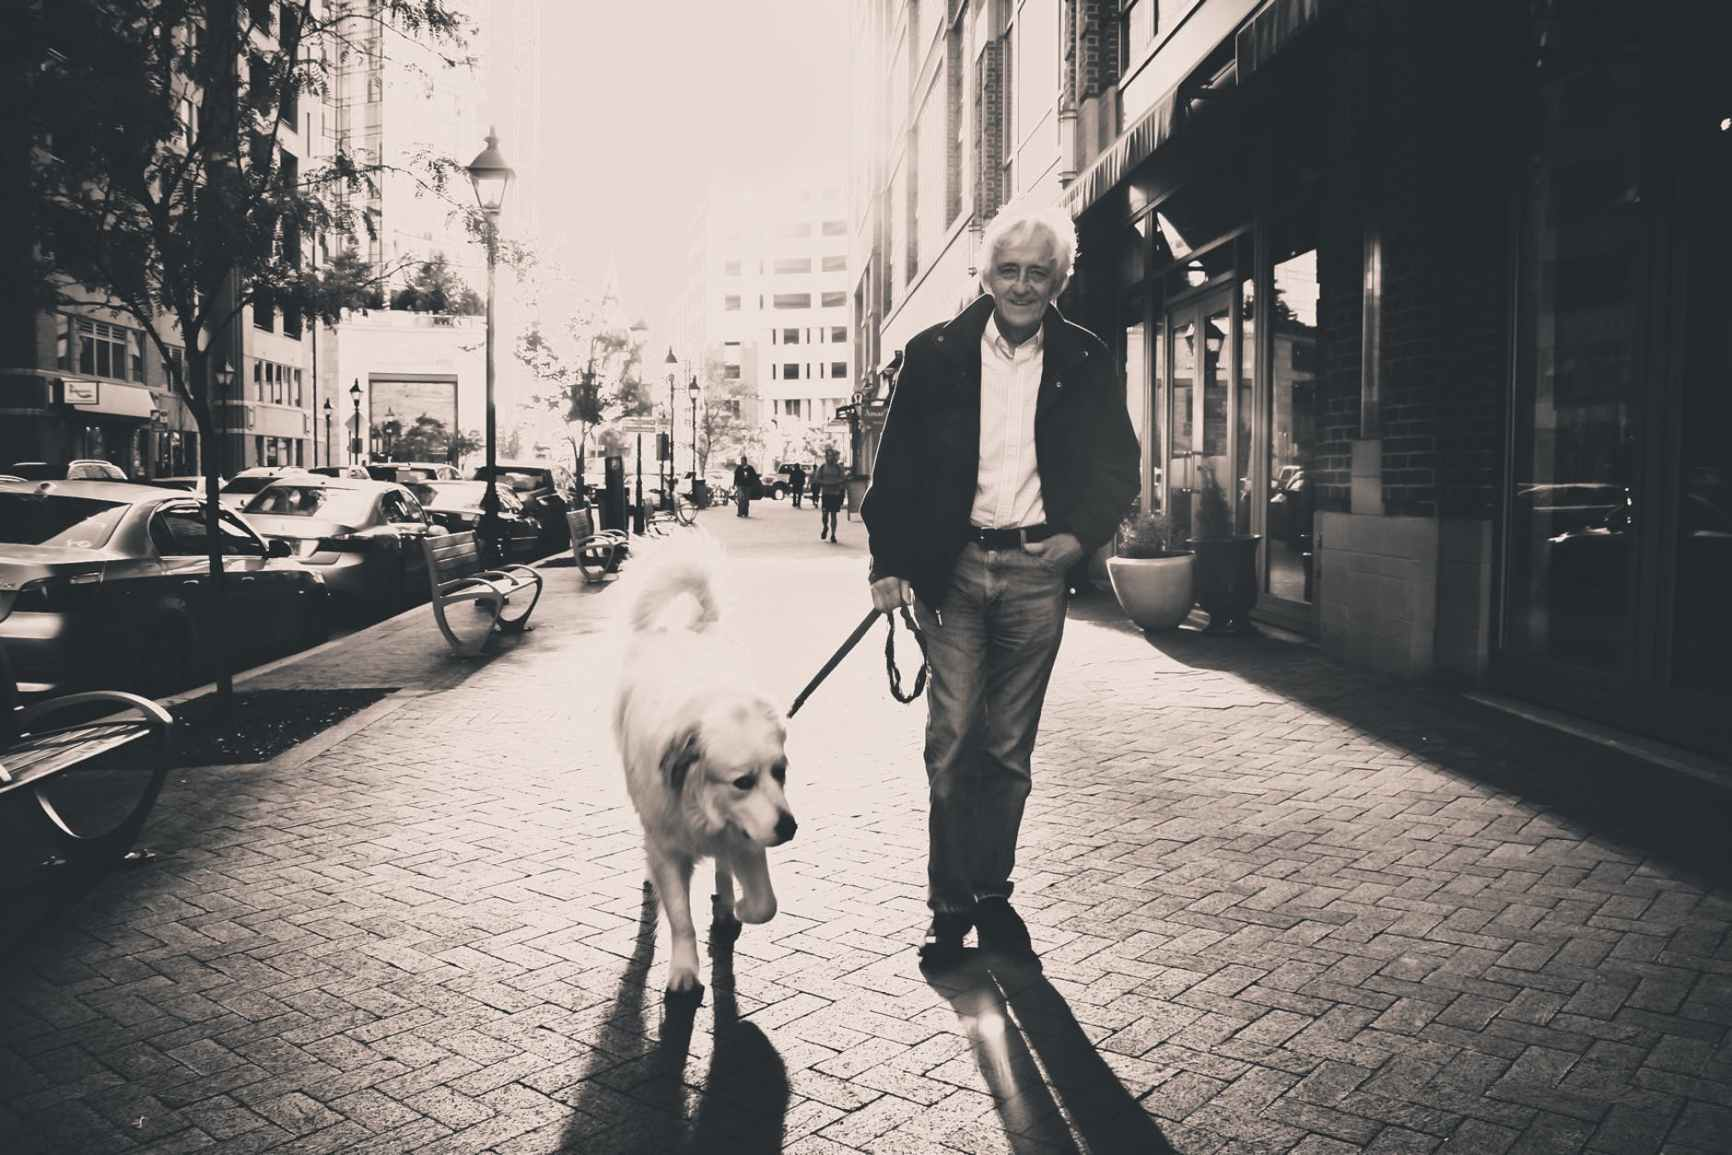 man dog streets walking